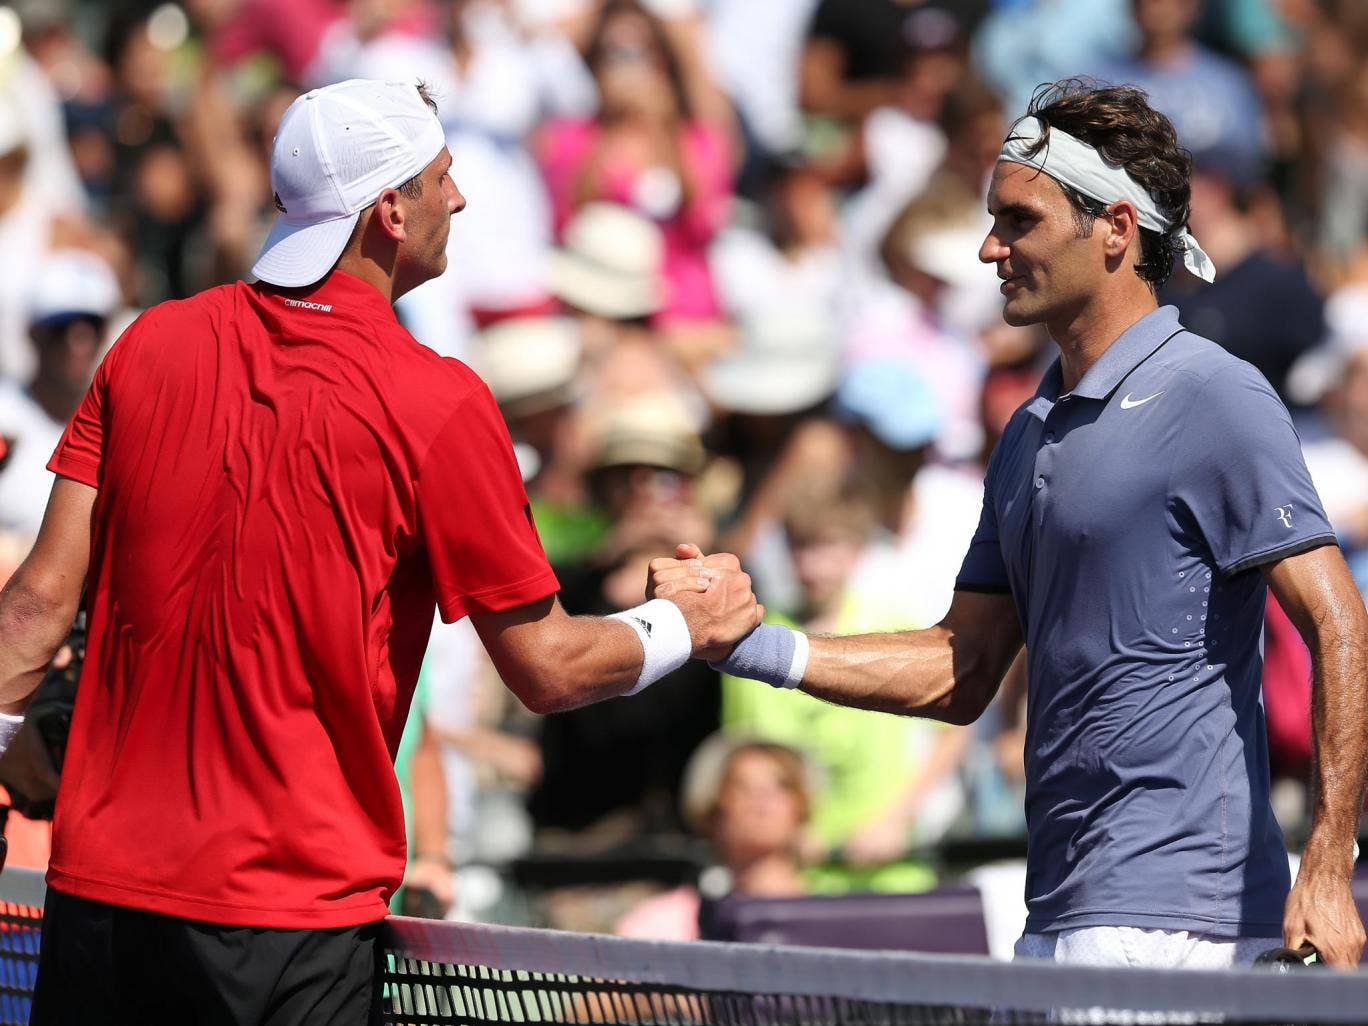 Roger Federer shakes hands with Thiemo de Bakker after beating him 6-3 6-3 in Miami